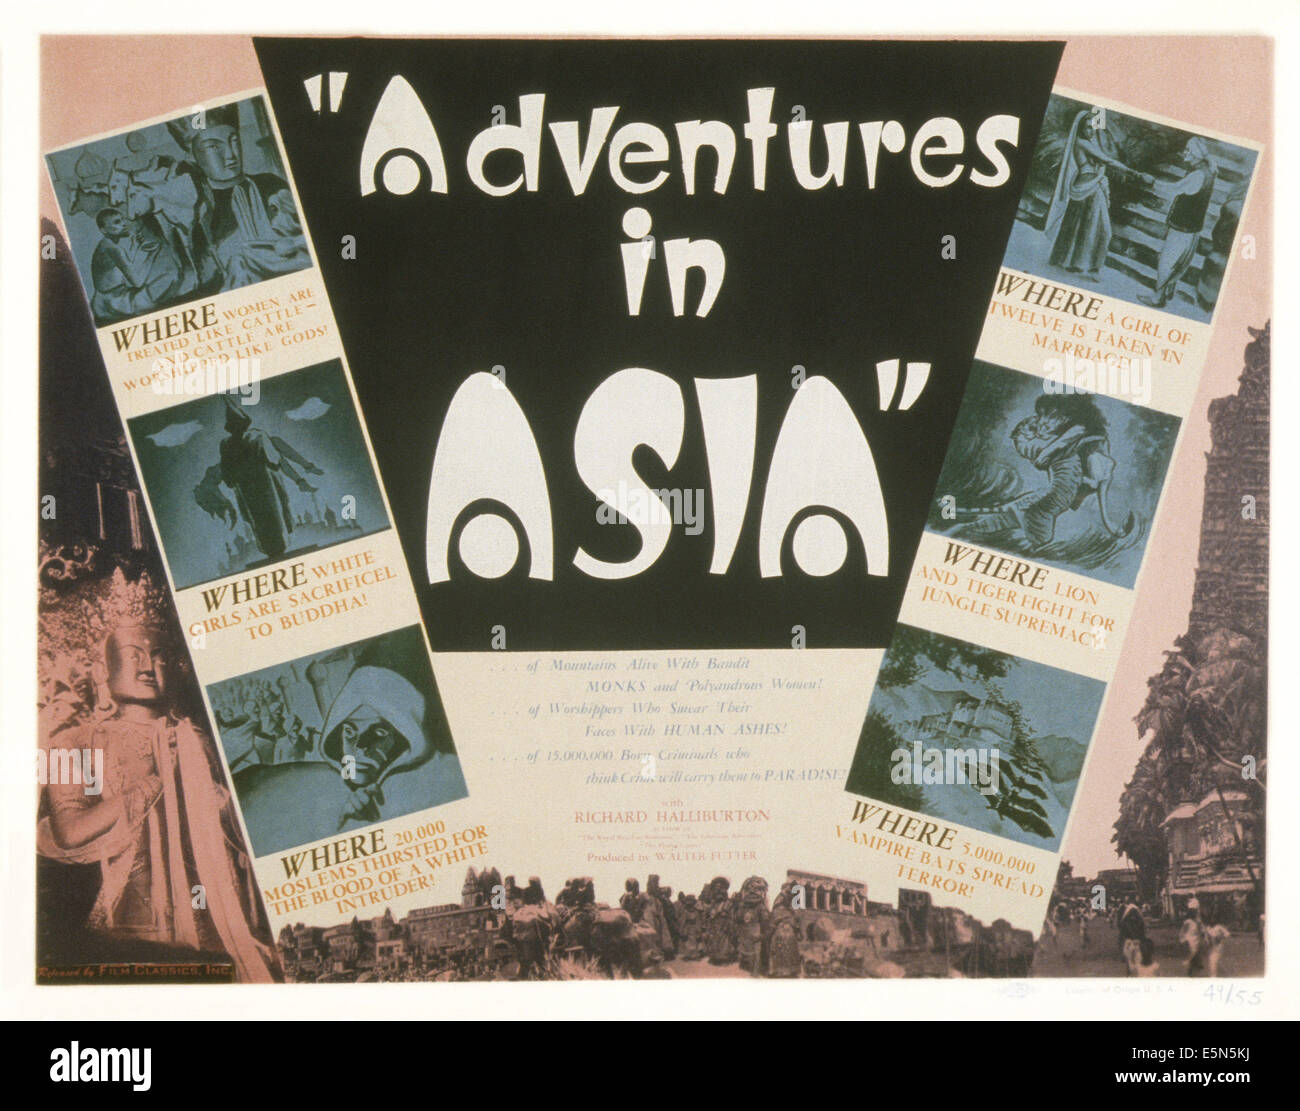 ADVENTURES IN ASIA, 1930s - Stock Image